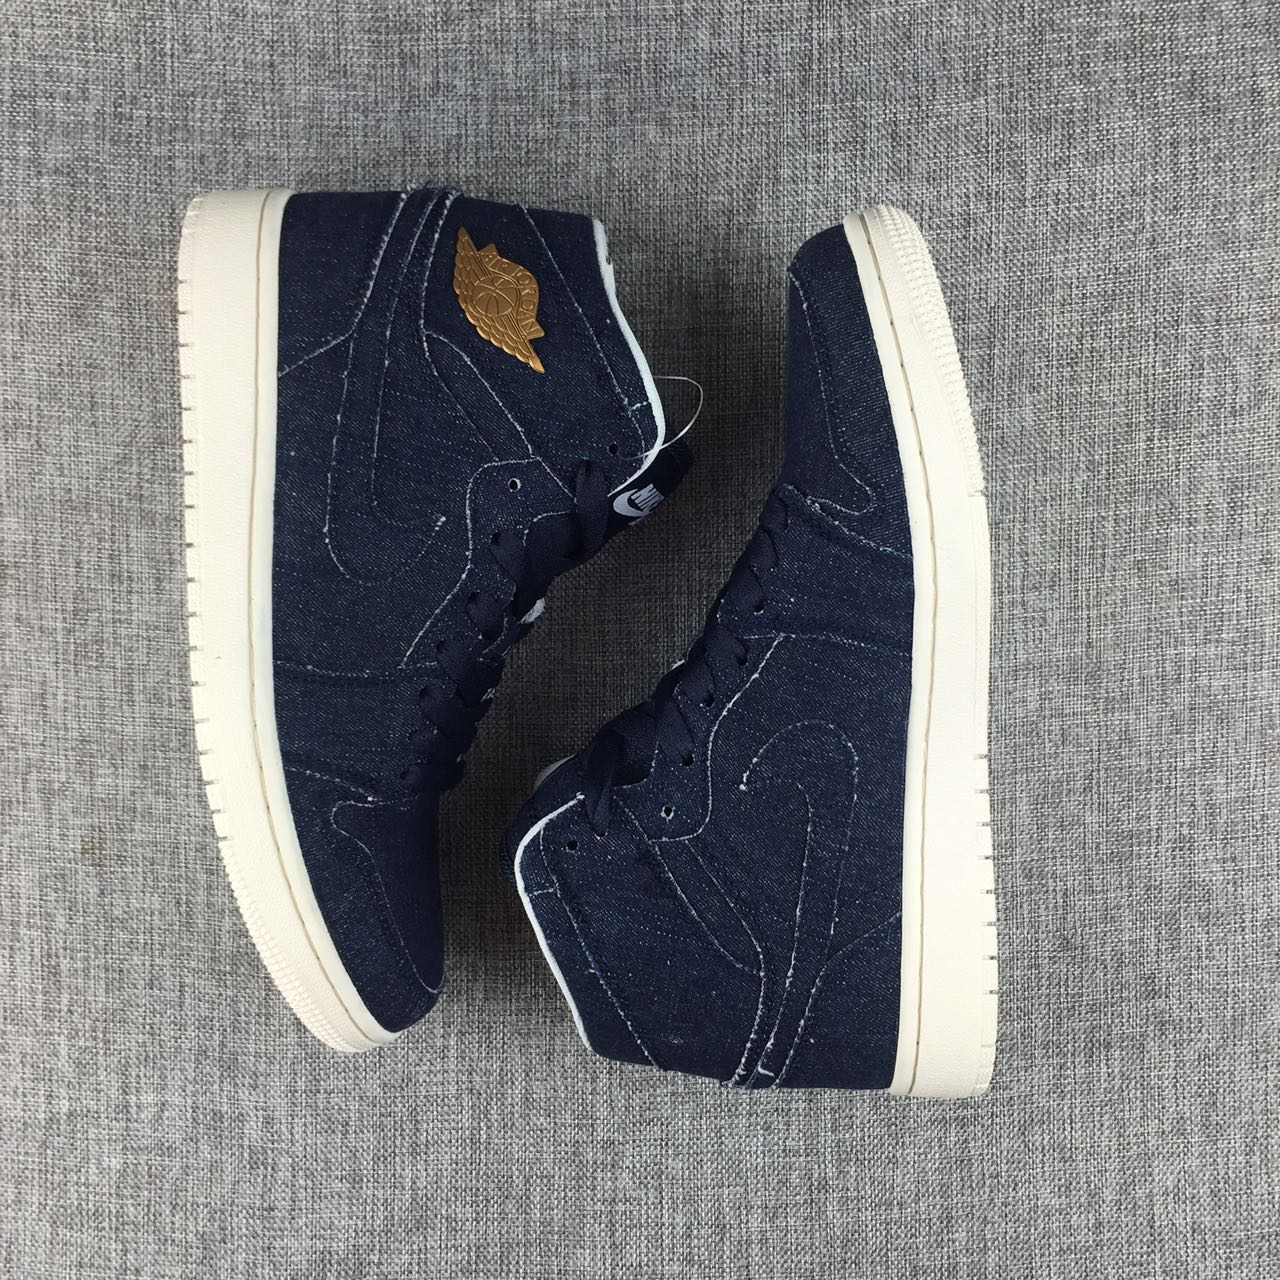 New Air Jordan 1 Tannin Blue Gold Shoes